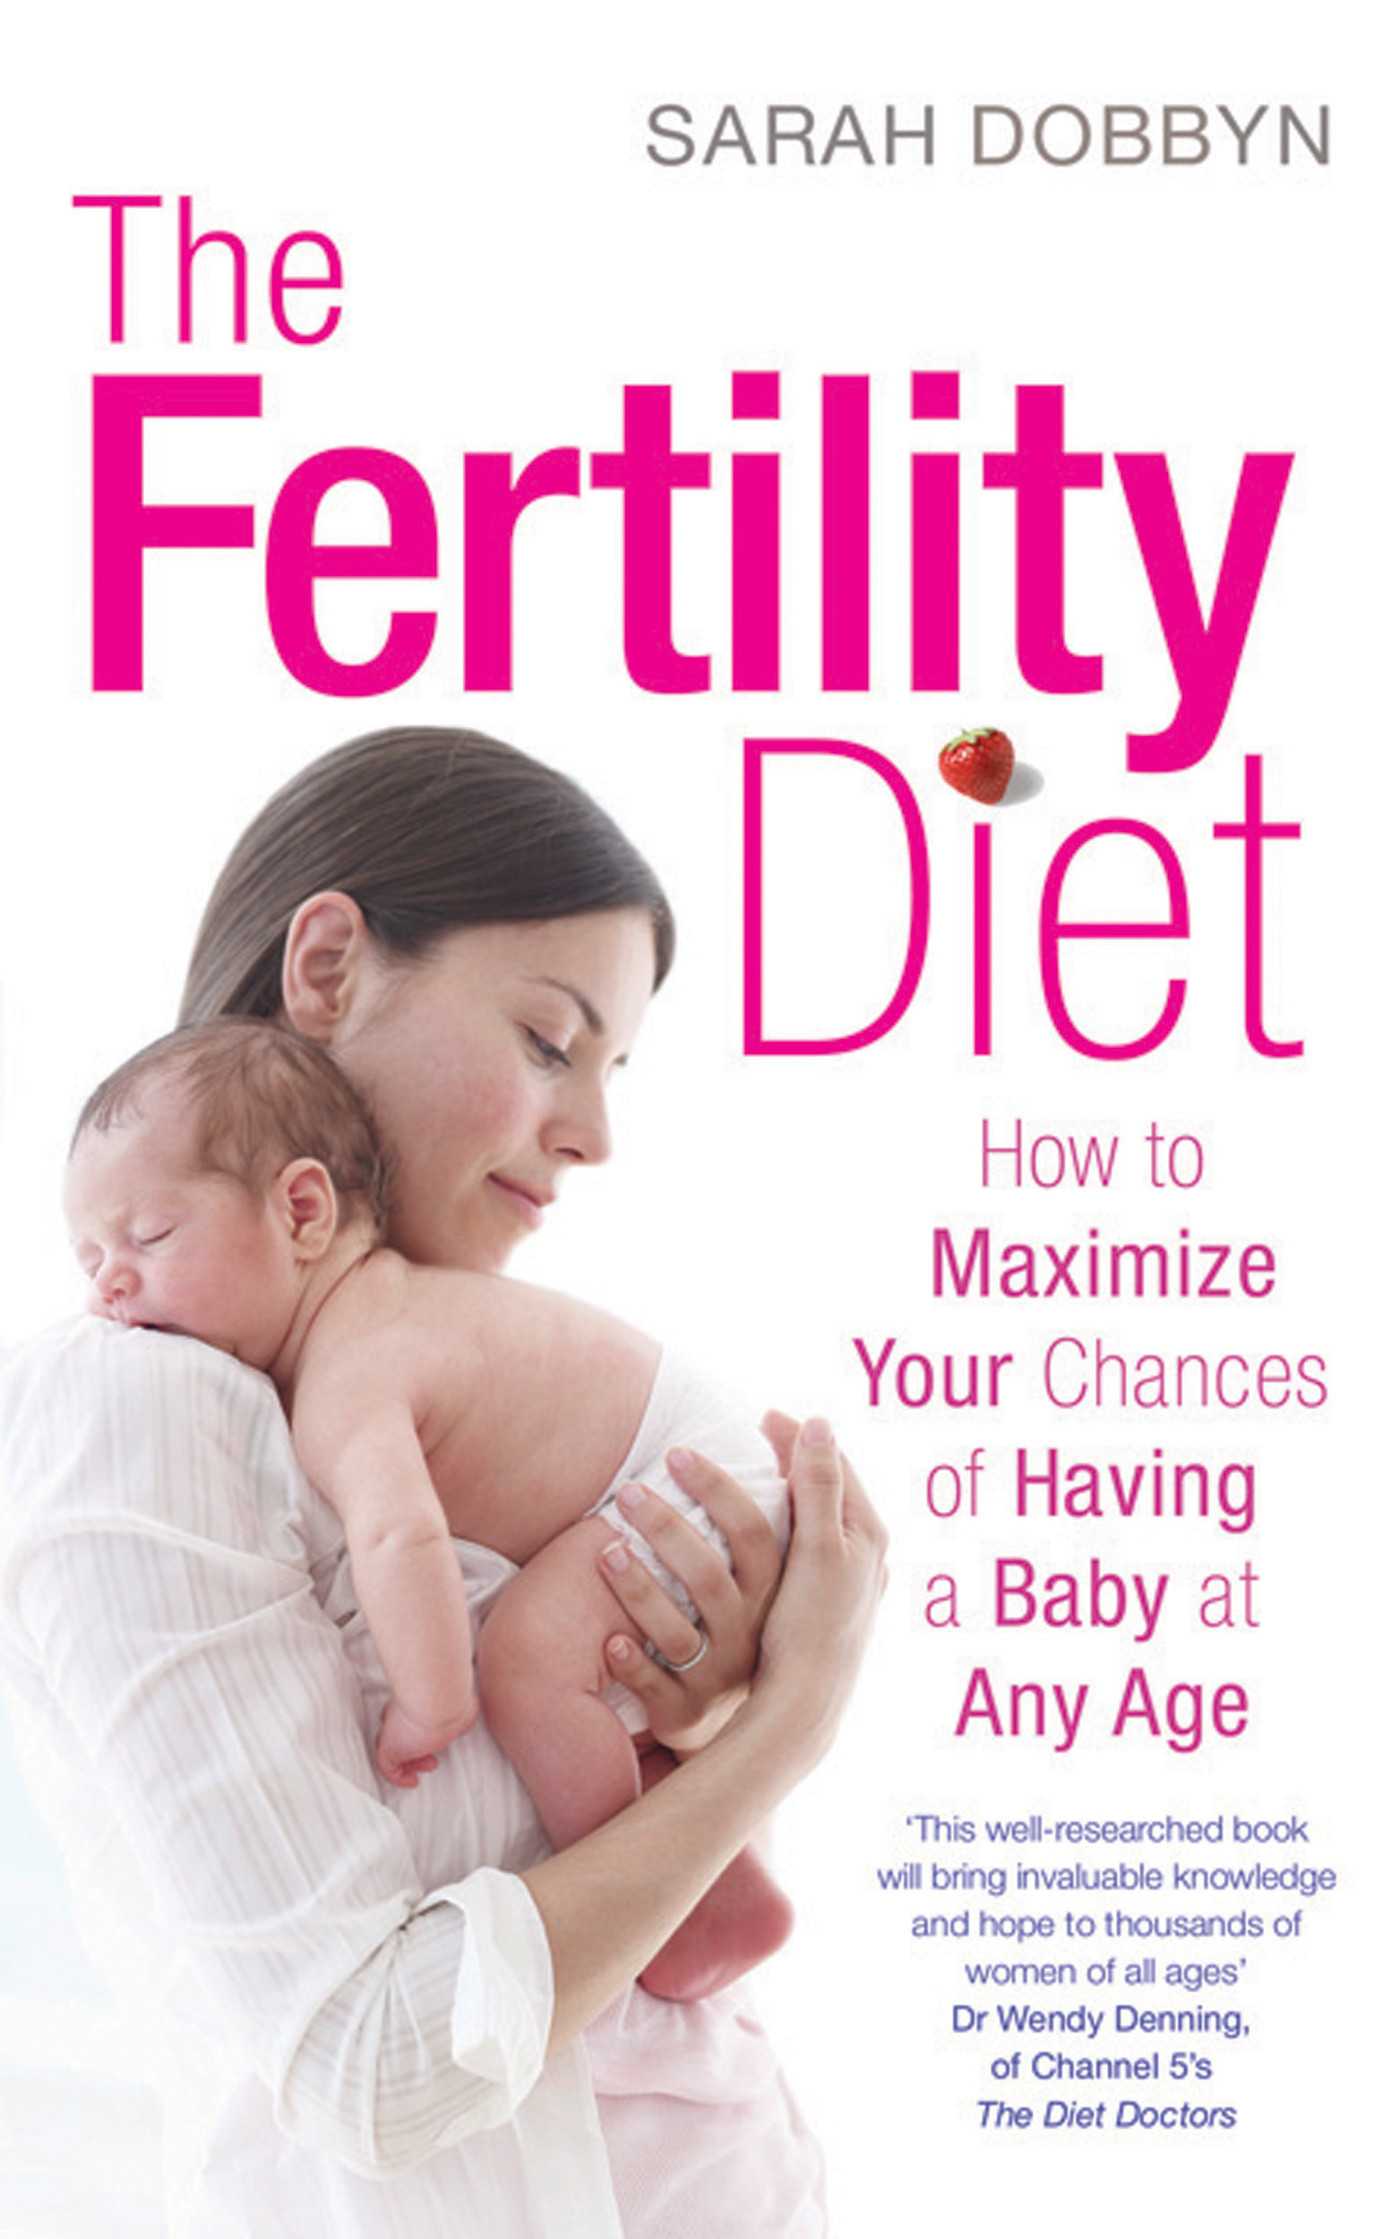 The Fertility Diet How to Maximize Your Chances of Having a Baby at Any Age